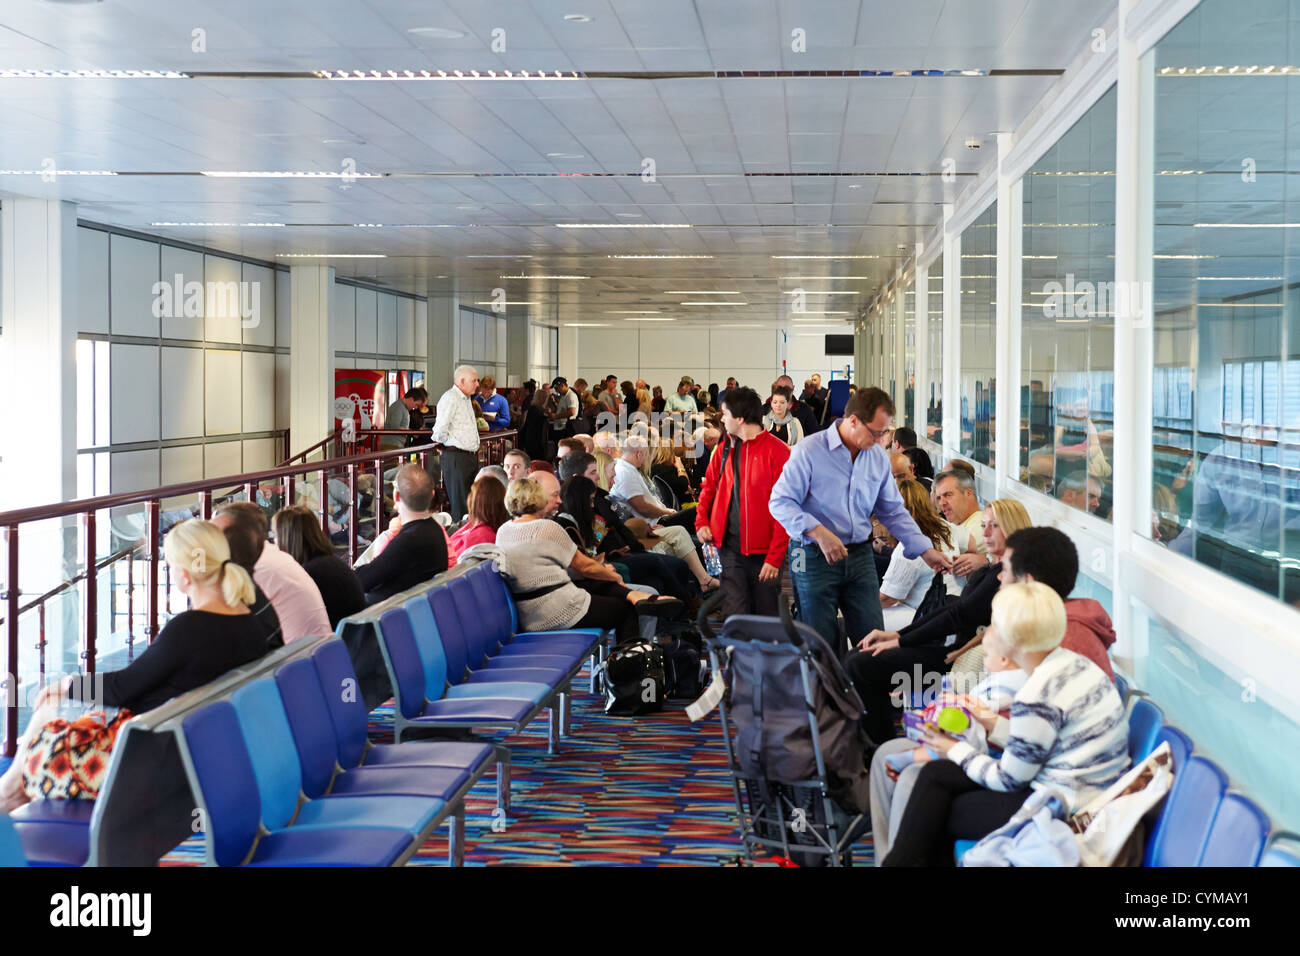 gatwick north terminal gate stock photos gatwick north terminal gate stock images alamy. Black Bedroom Furniture Sets. Home Design Ideas